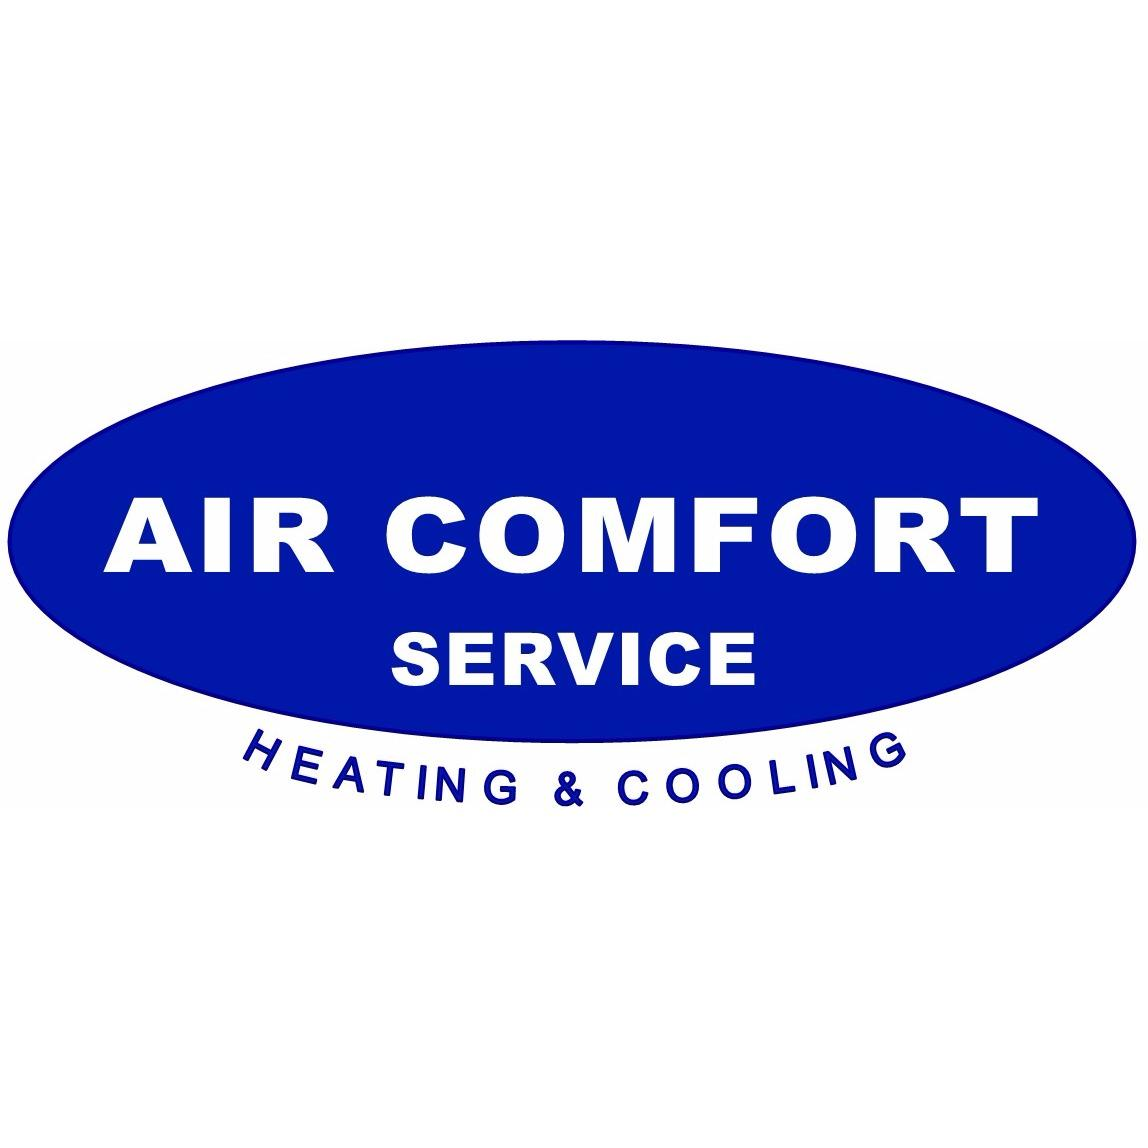 home depot furnace financing with Air  Fort Service Inc on Jackson Sons Heating Air Conditioning1 Dudley Nc likewise Daniels Heating And Air Conditioning likewise 300175950 additionally Allstate Air And Heat also Advantage Air Llc.